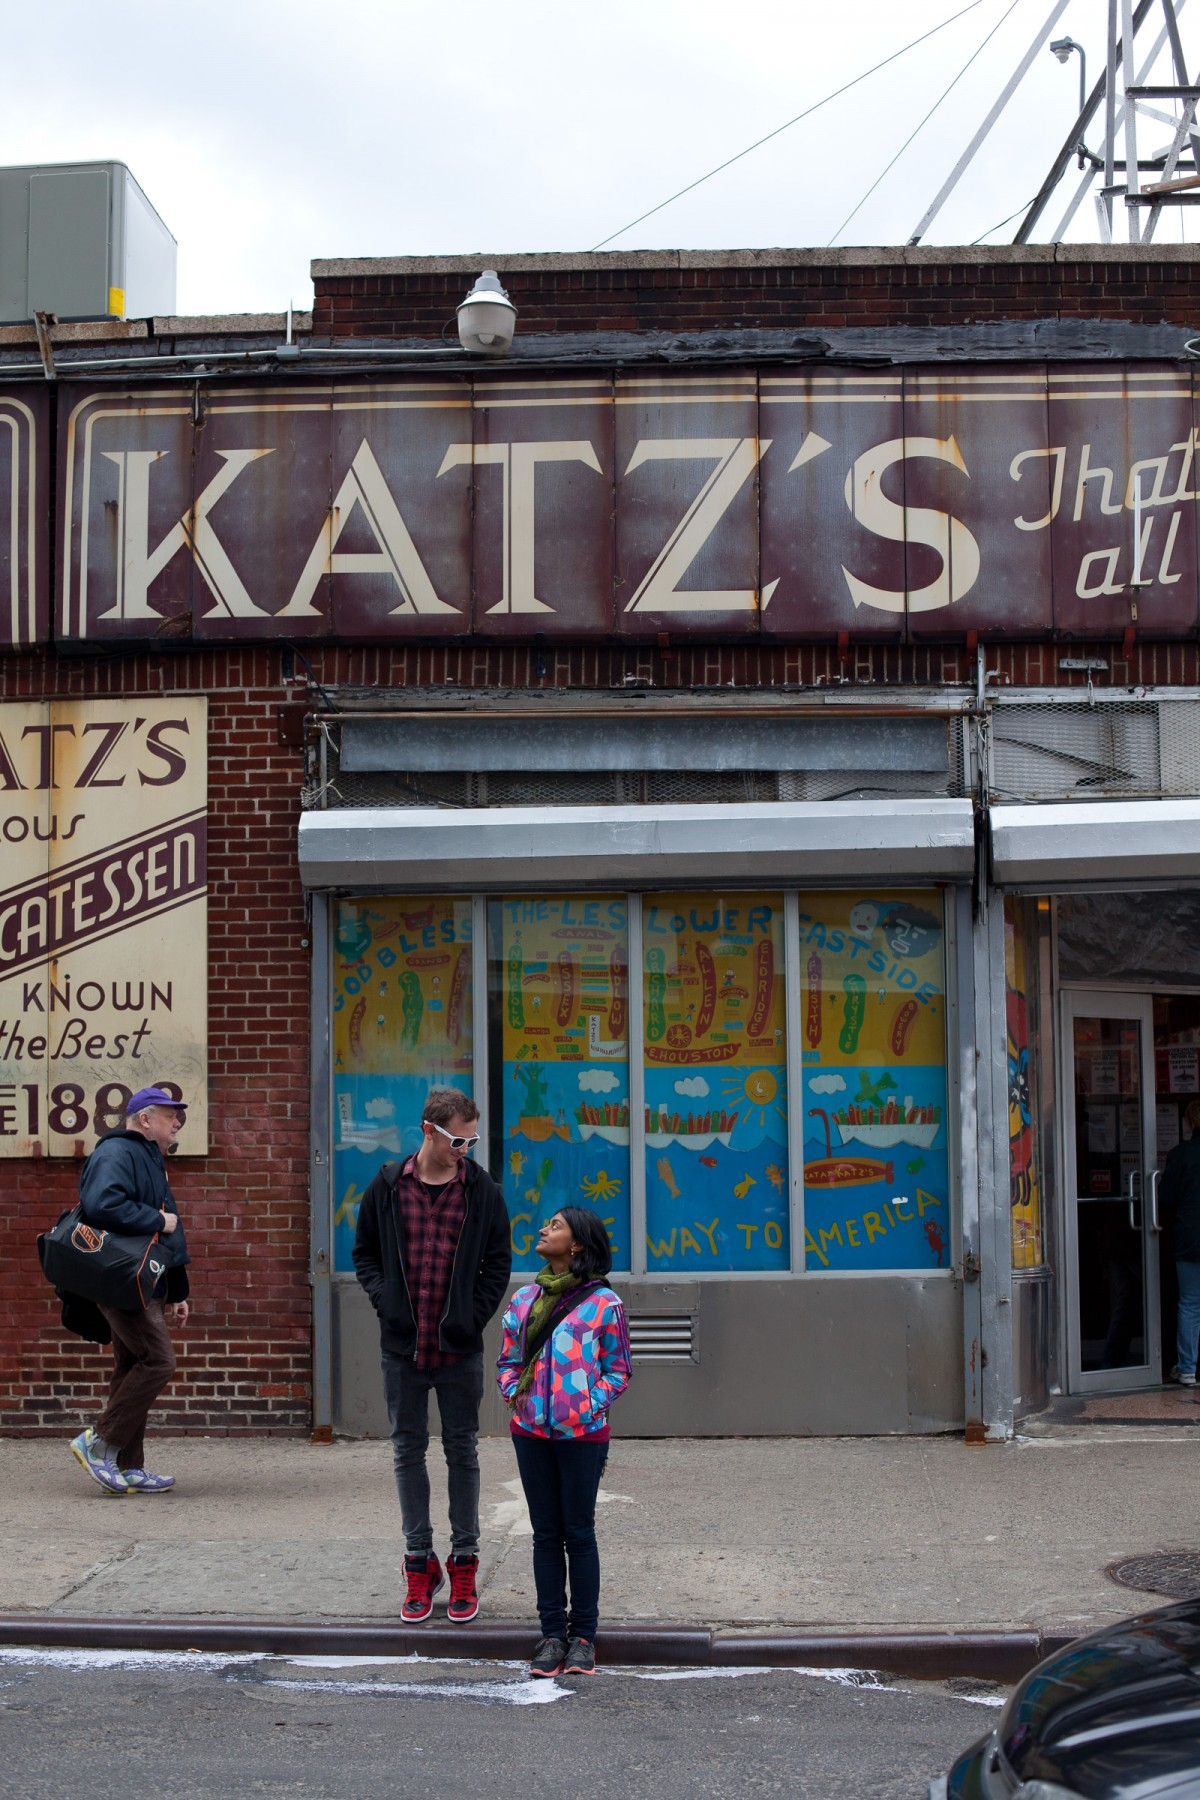 "The sign on the front of the building which, according to Wikipedia, ""came about when a sign maker asked Harry Tarowsky what to say on the deli's sign, and Harry replied ""Katz's, that's all"". This was misinterpreted by the sign maker who painted the sign as it stands today on the side of the building."""